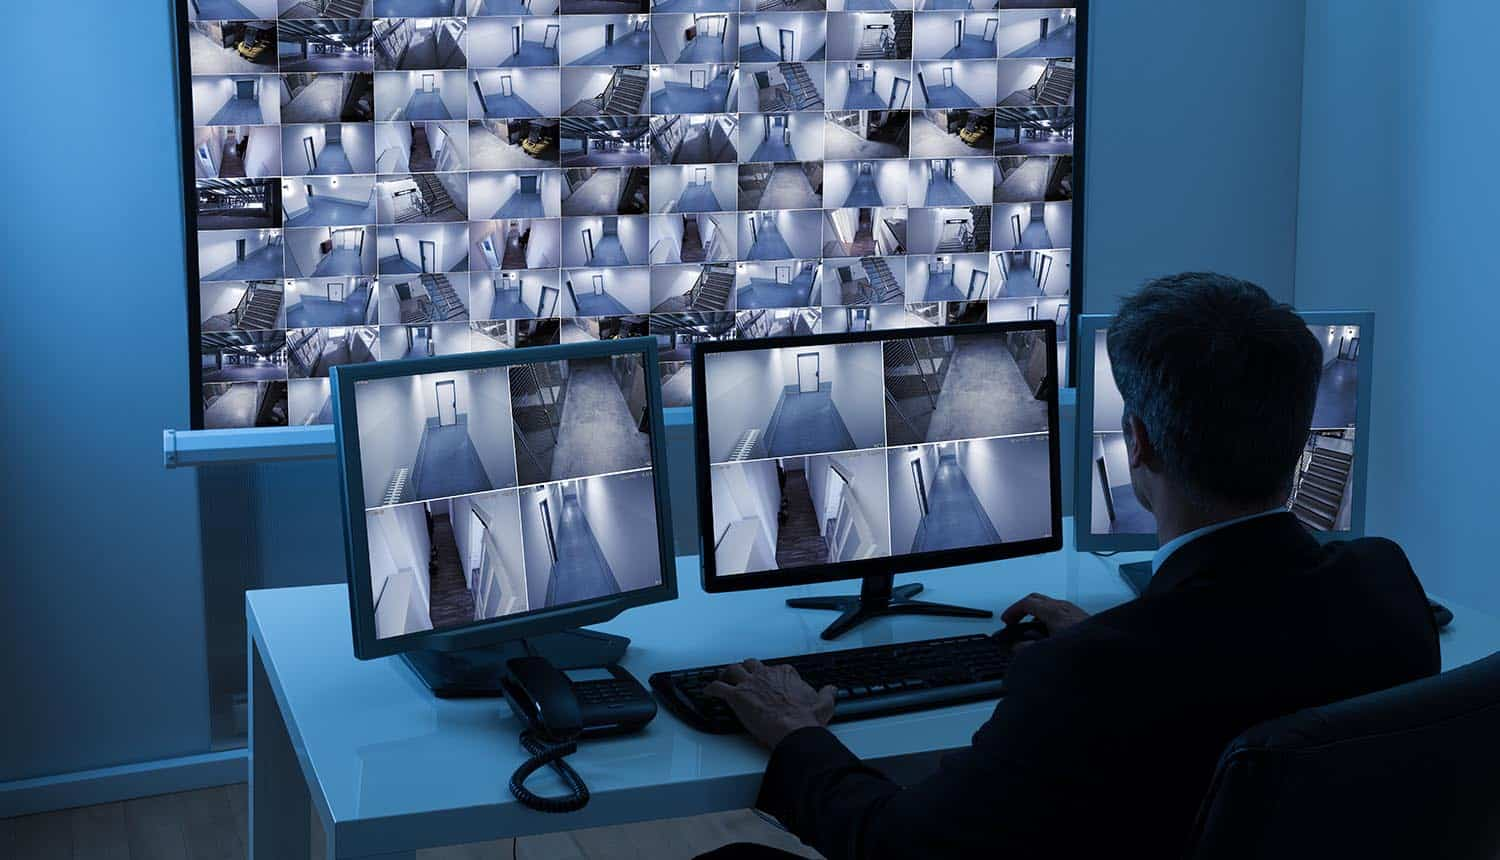 Man in control room monitoring multiple cameras showing cyber-physical security as part of enterprise security